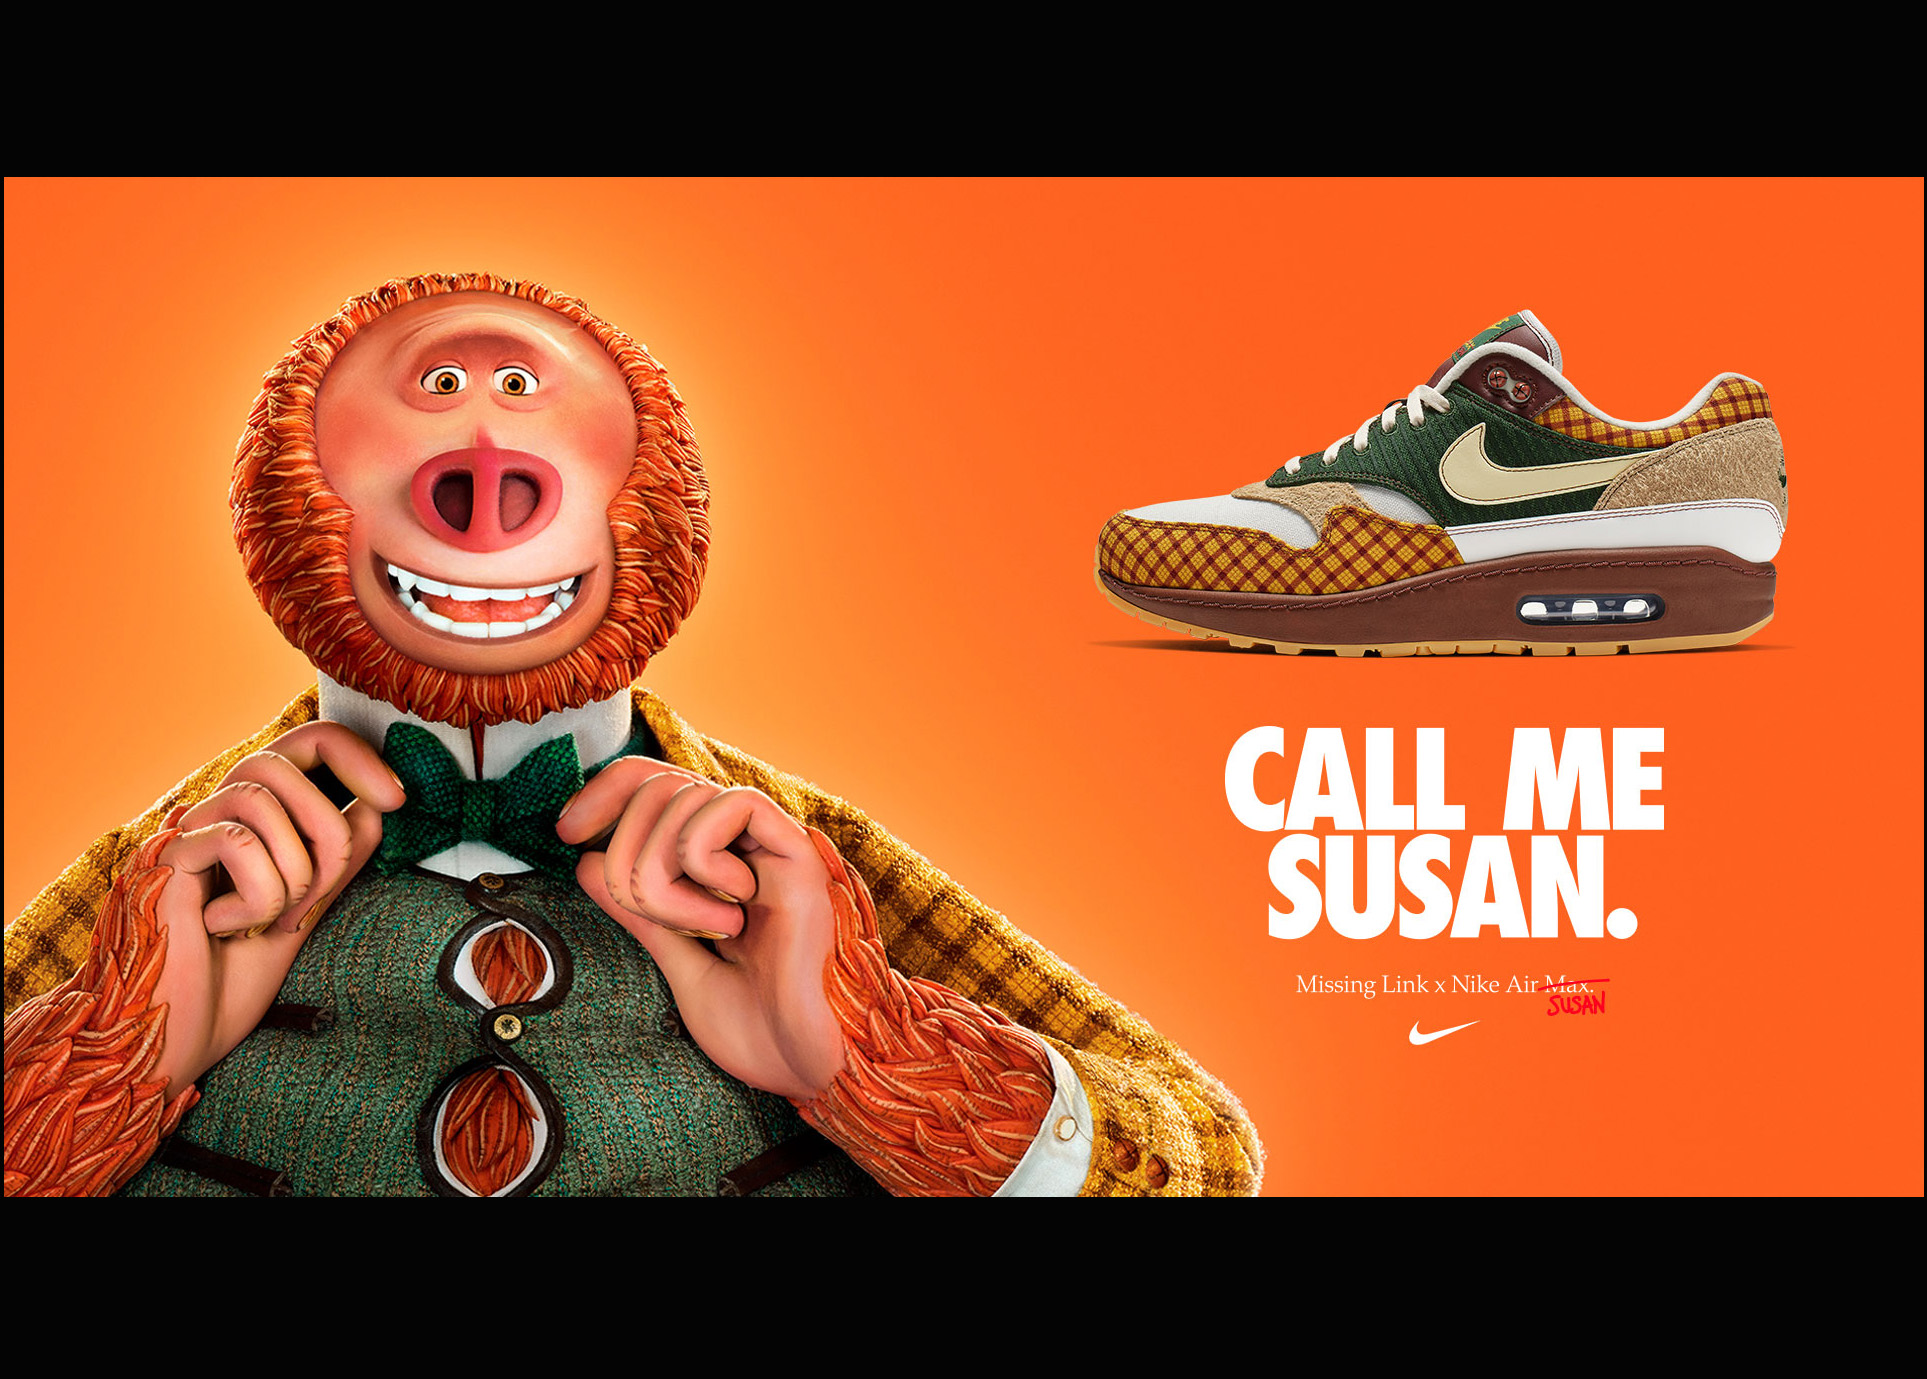 你好!Missing Link x Nike Air Max Susan